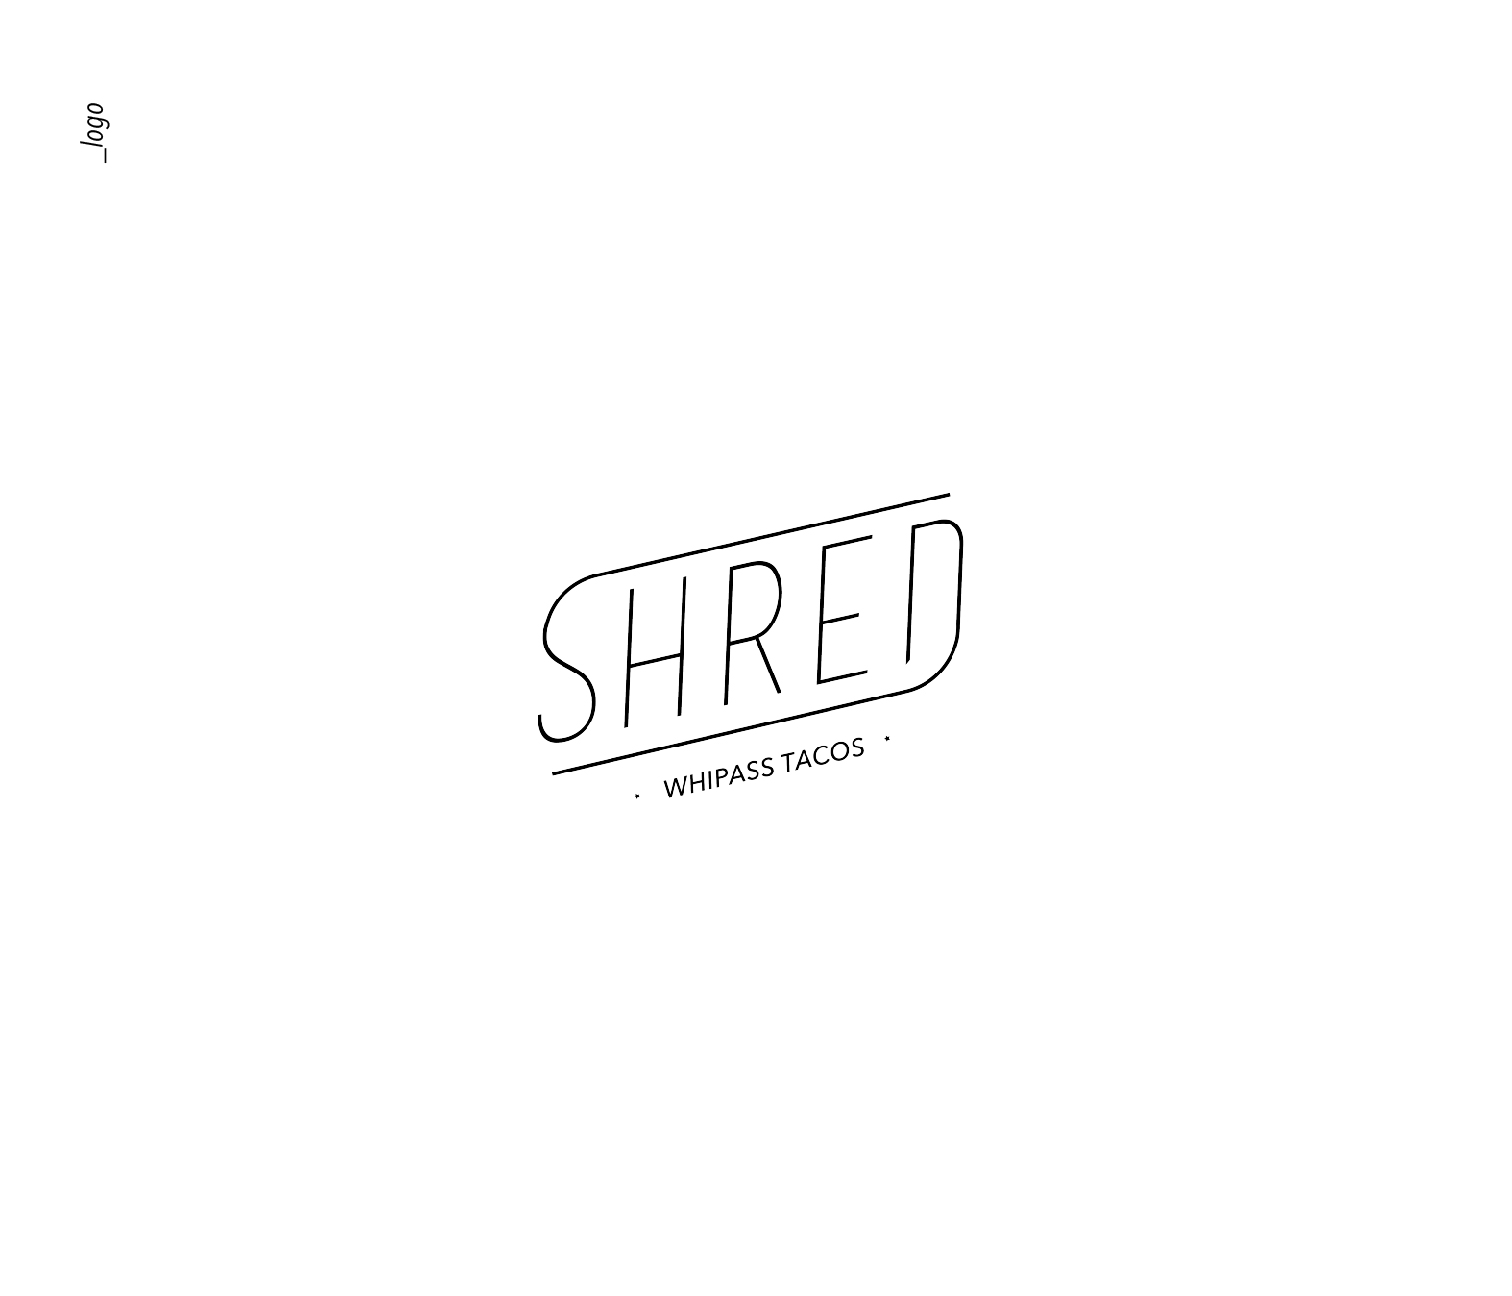 Shred_ROUNDUP-01.jpg